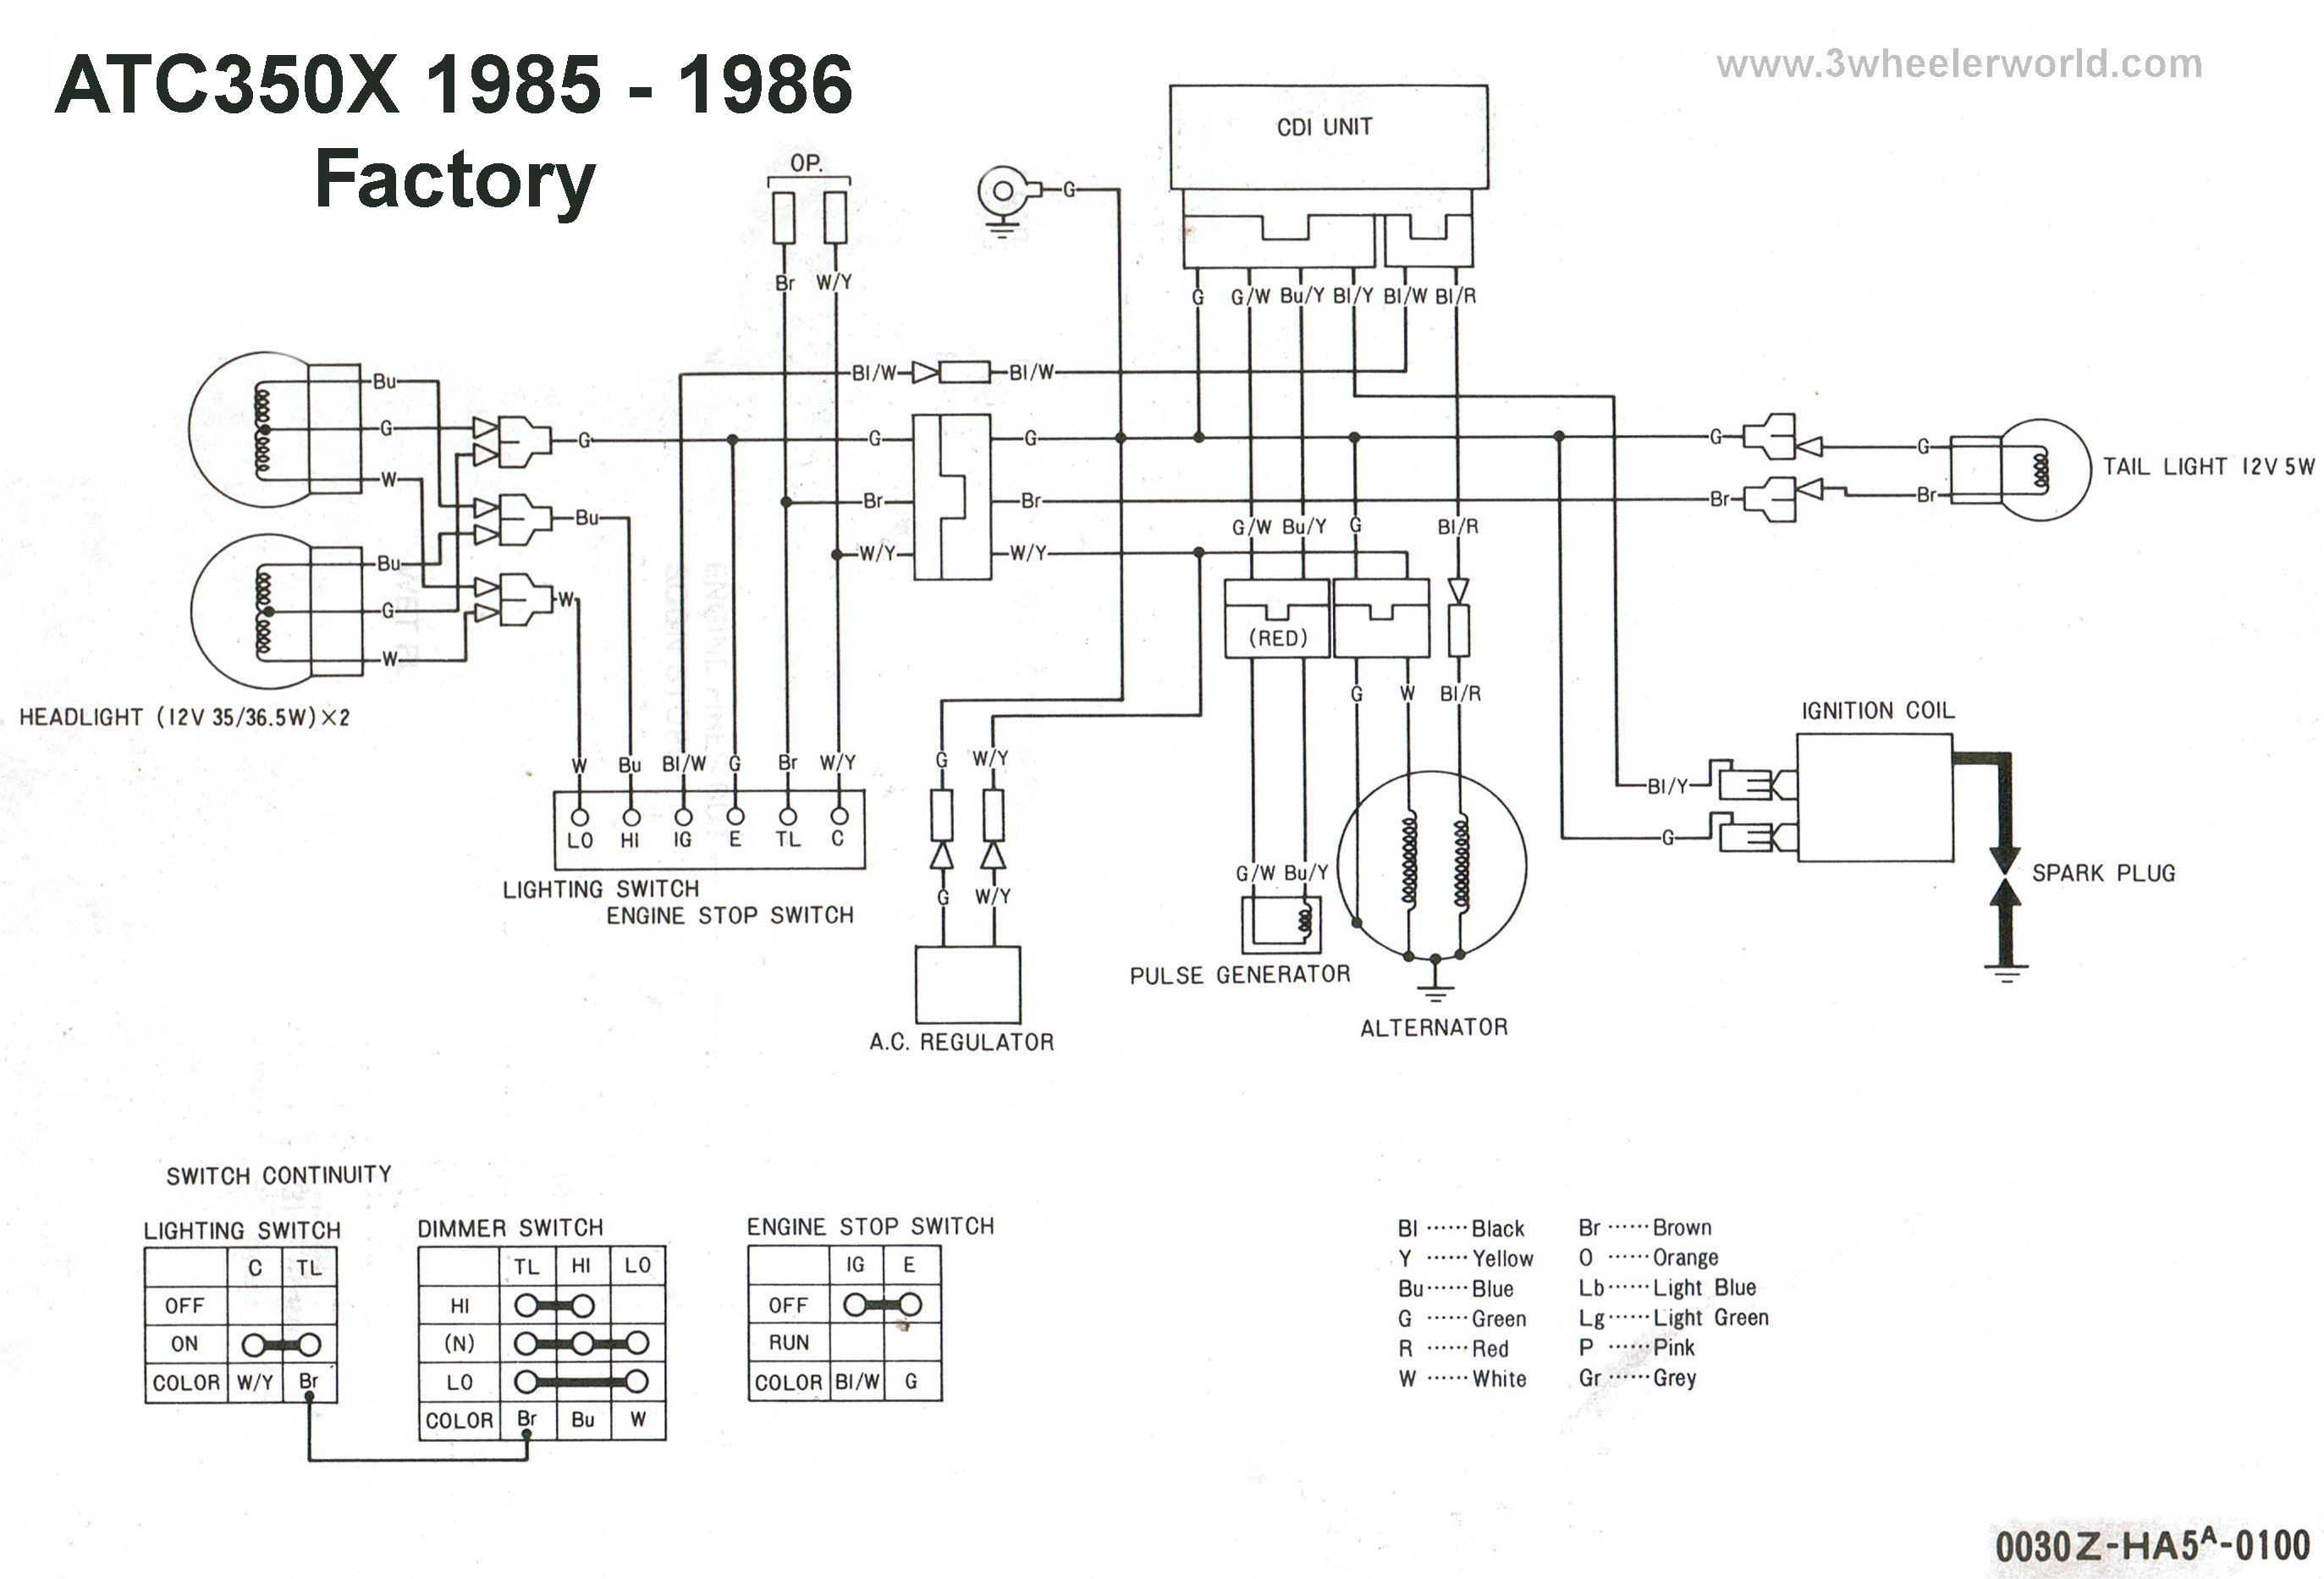 ATC350Xx85Thru86 honda 250x wiring diagram on honda download wirning diagrams yamaha raptor 660 wiring diagram at bayanpartner.co